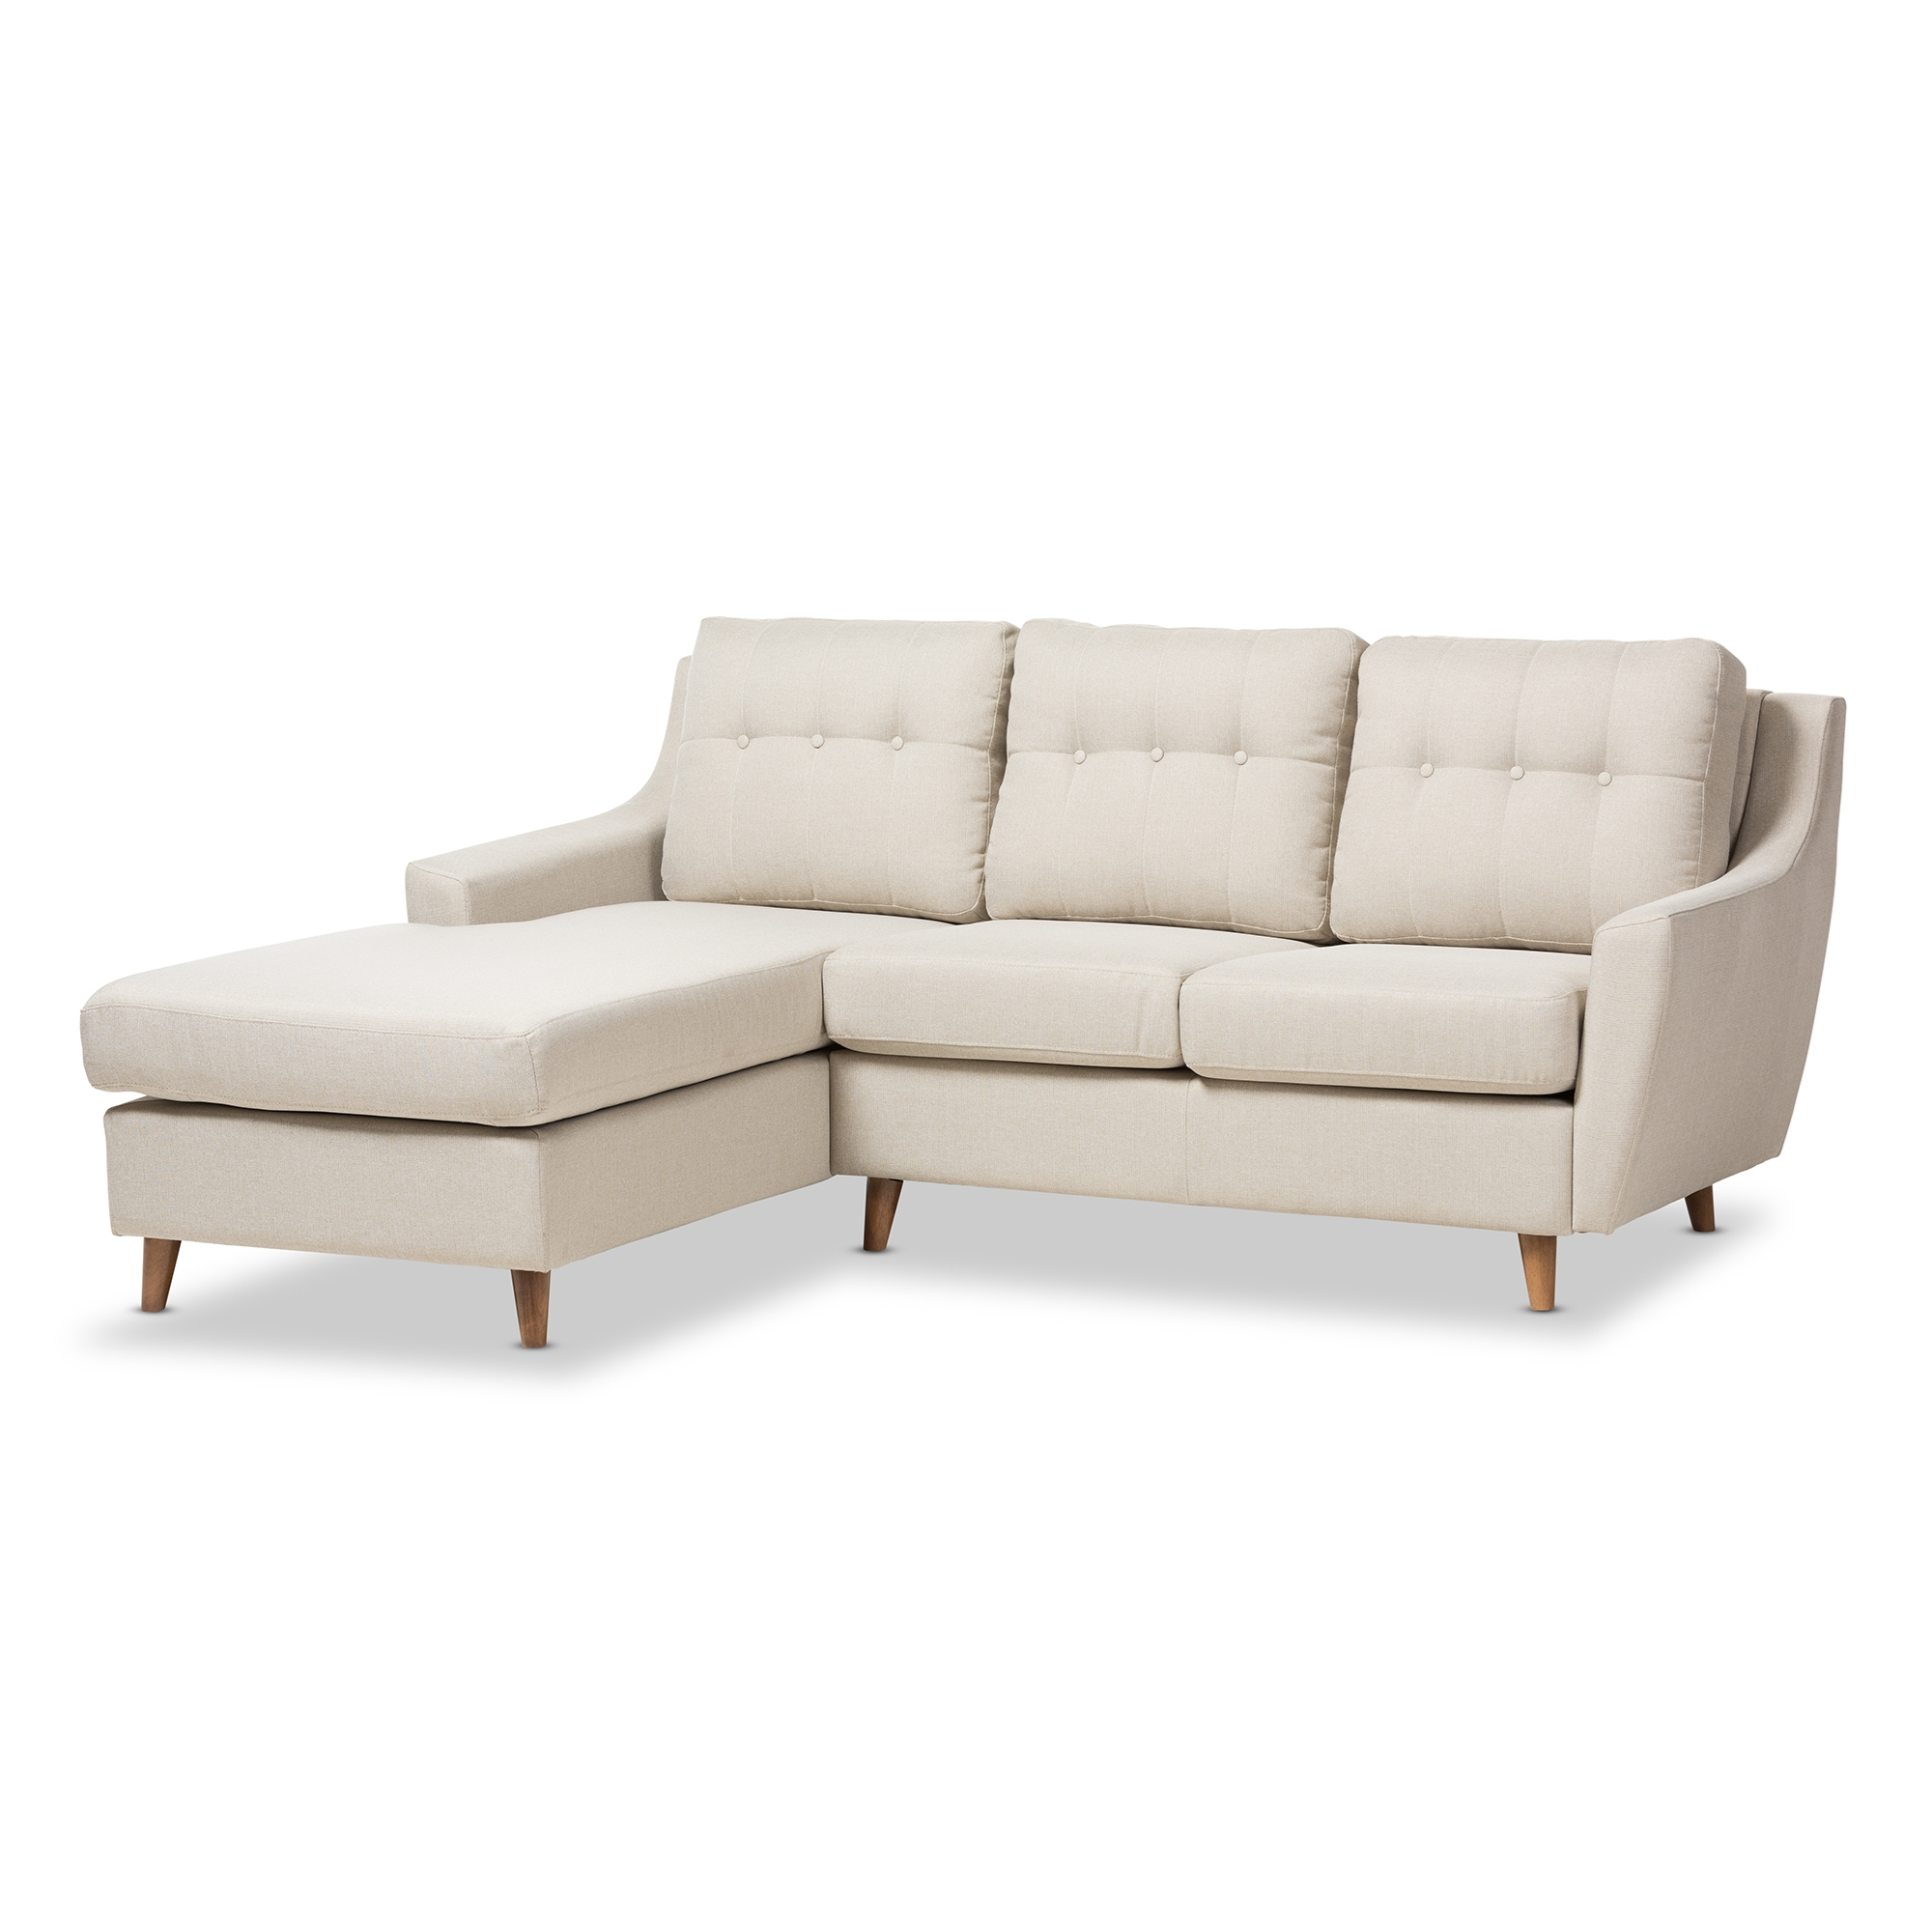 Cheap sectional sofas cheap sectional sofas under 300 for Cheap quality couches